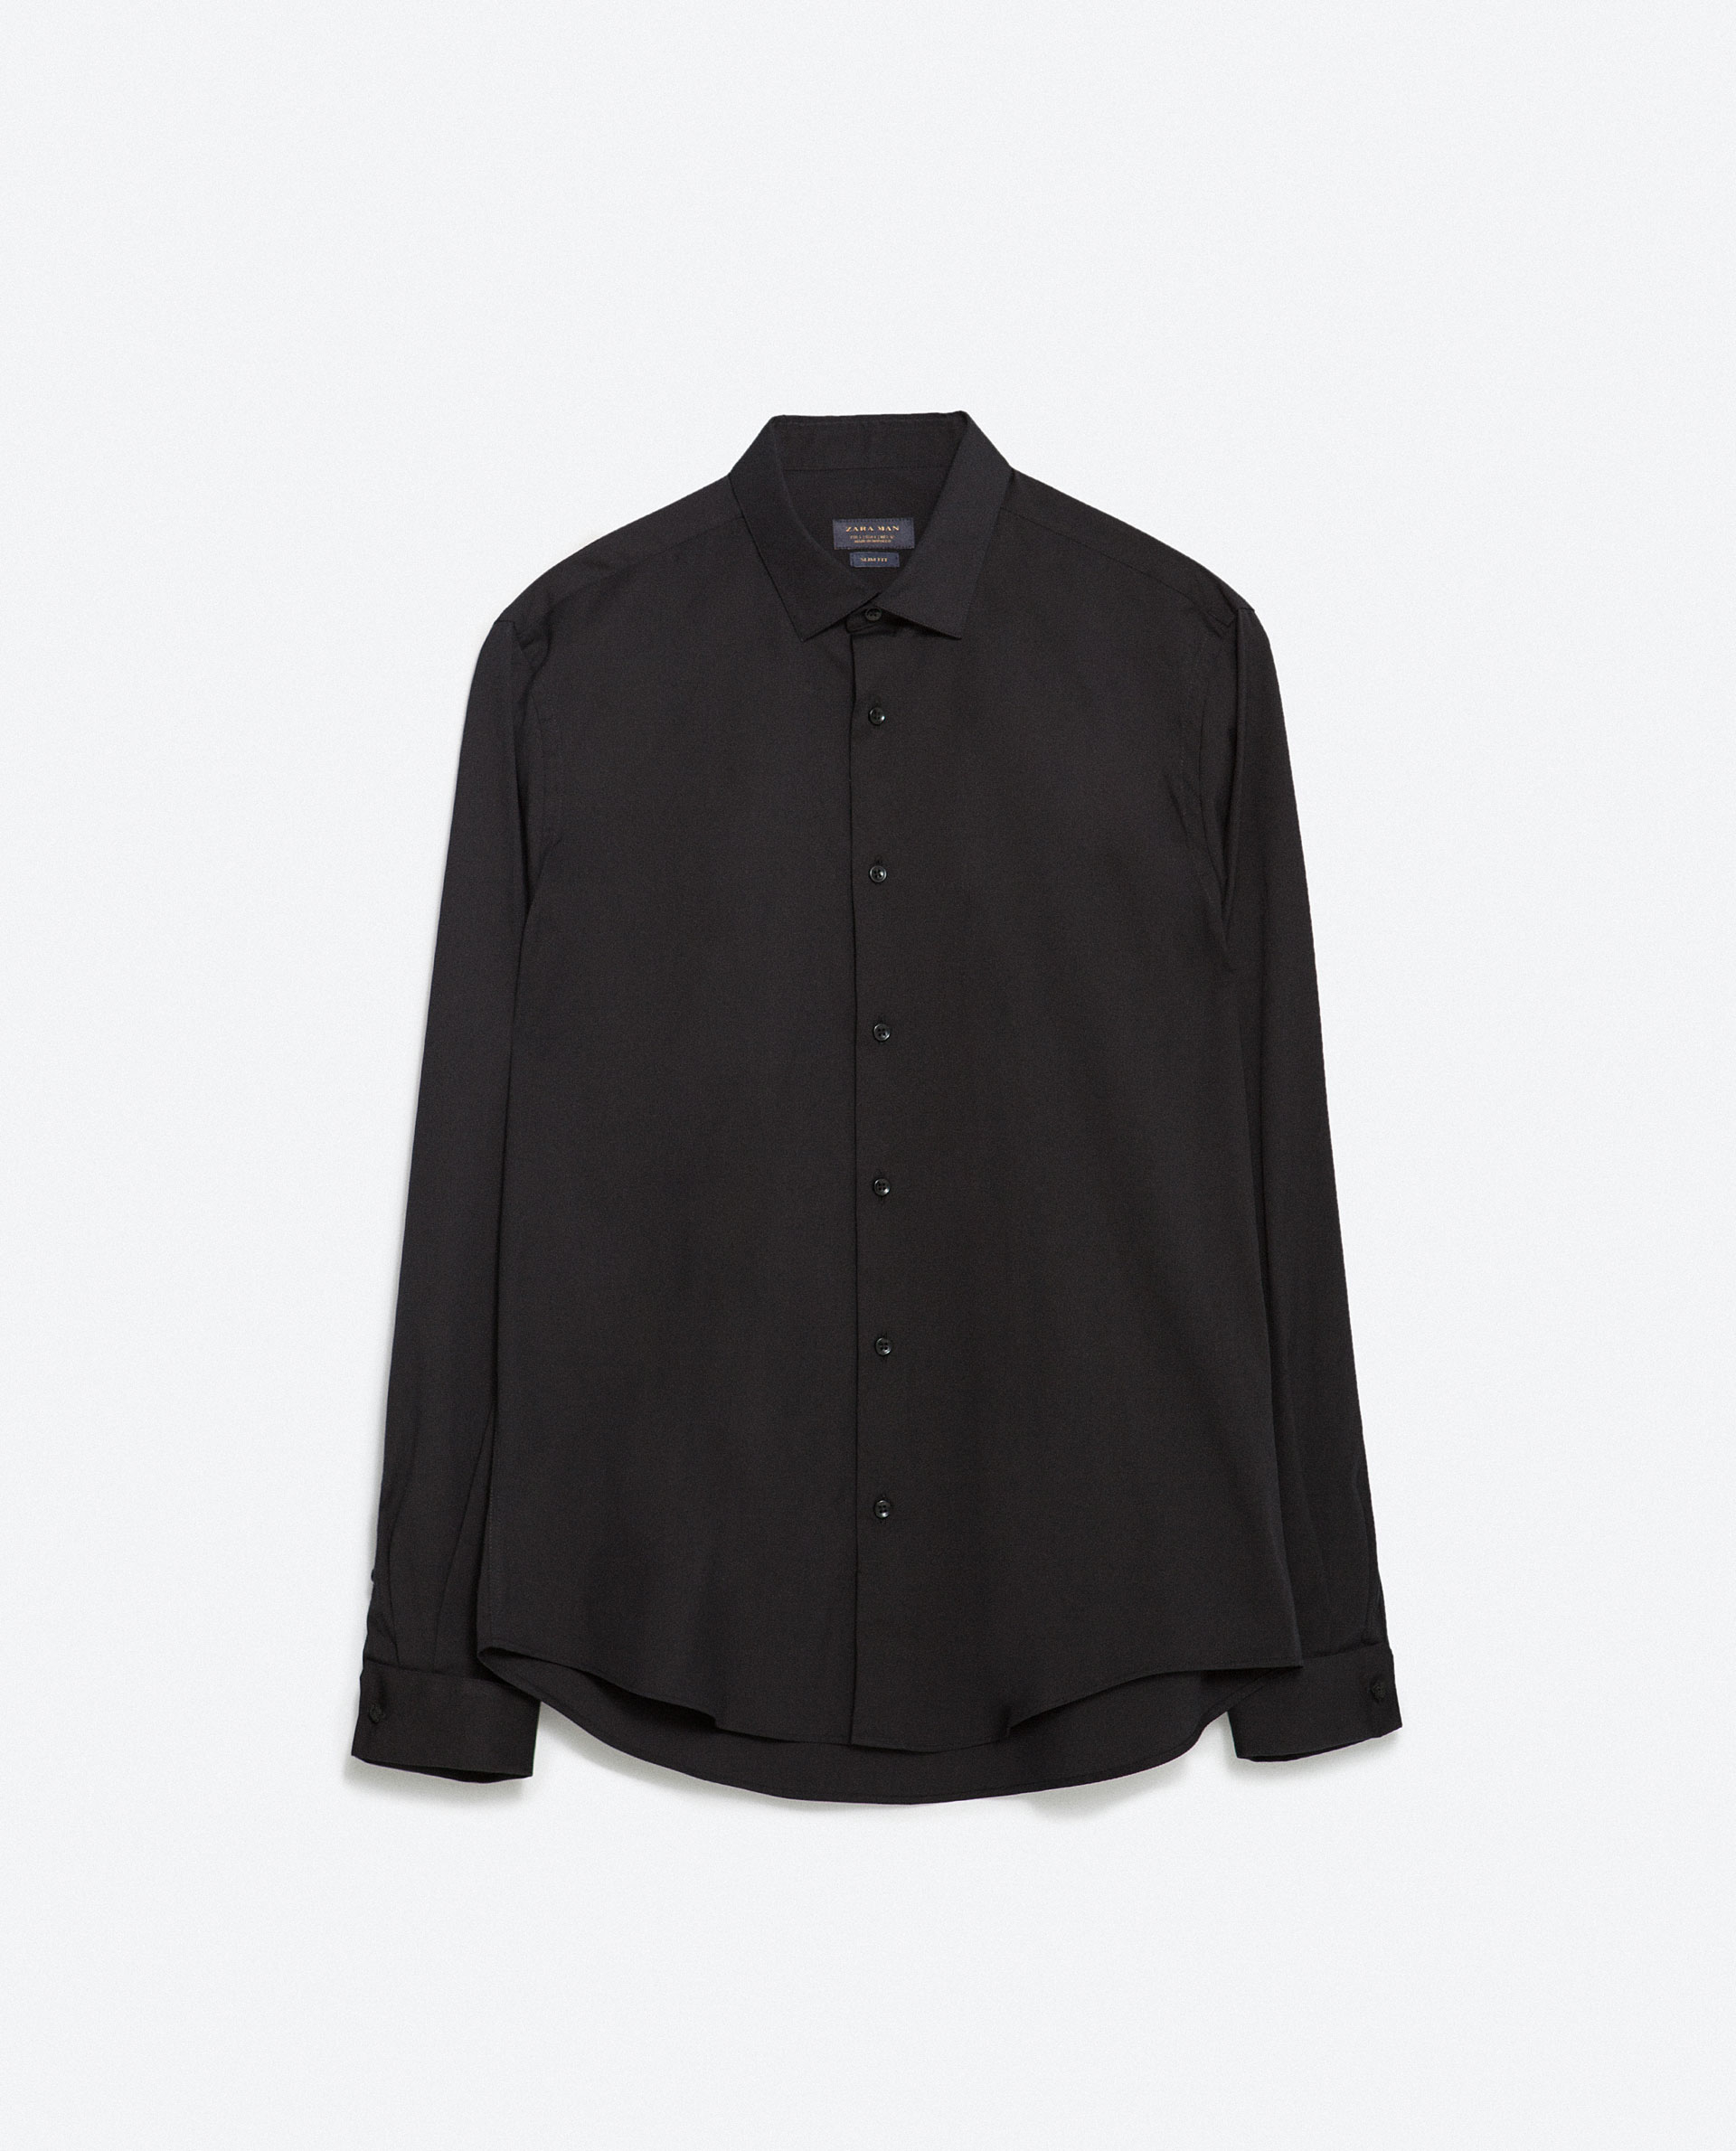 Zara shirt with double cuffs in black for men lyst for Zara mens shirts sale